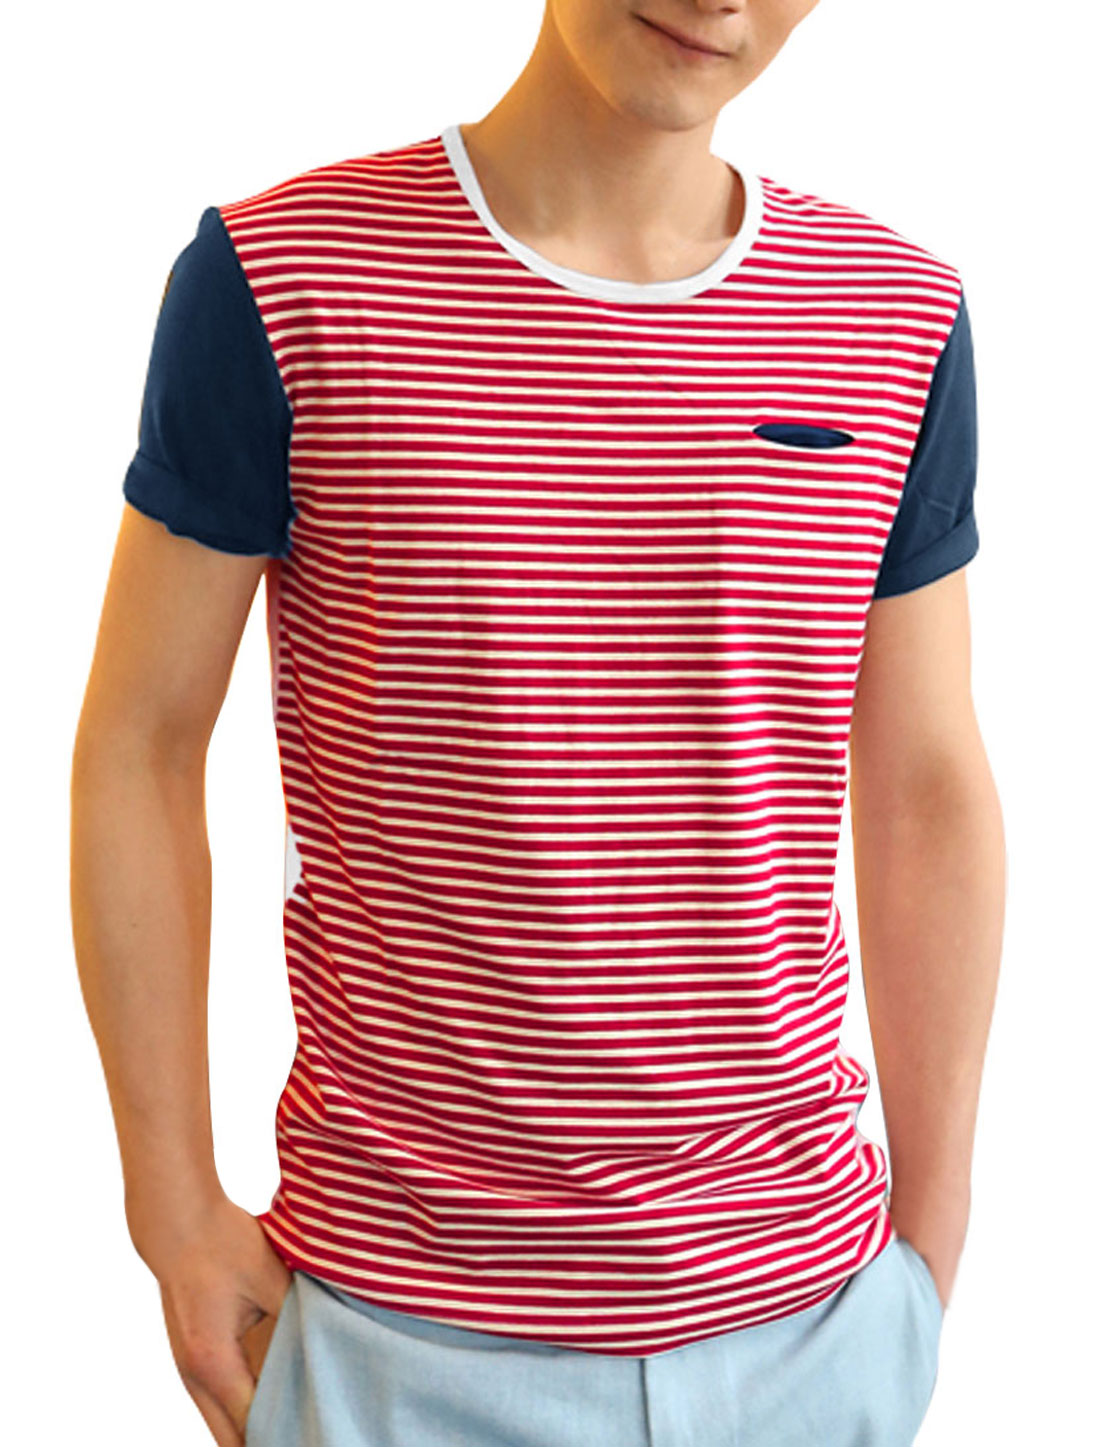 Men Personalized Stretchy Stripes Stylish Leisure Shirt Red M